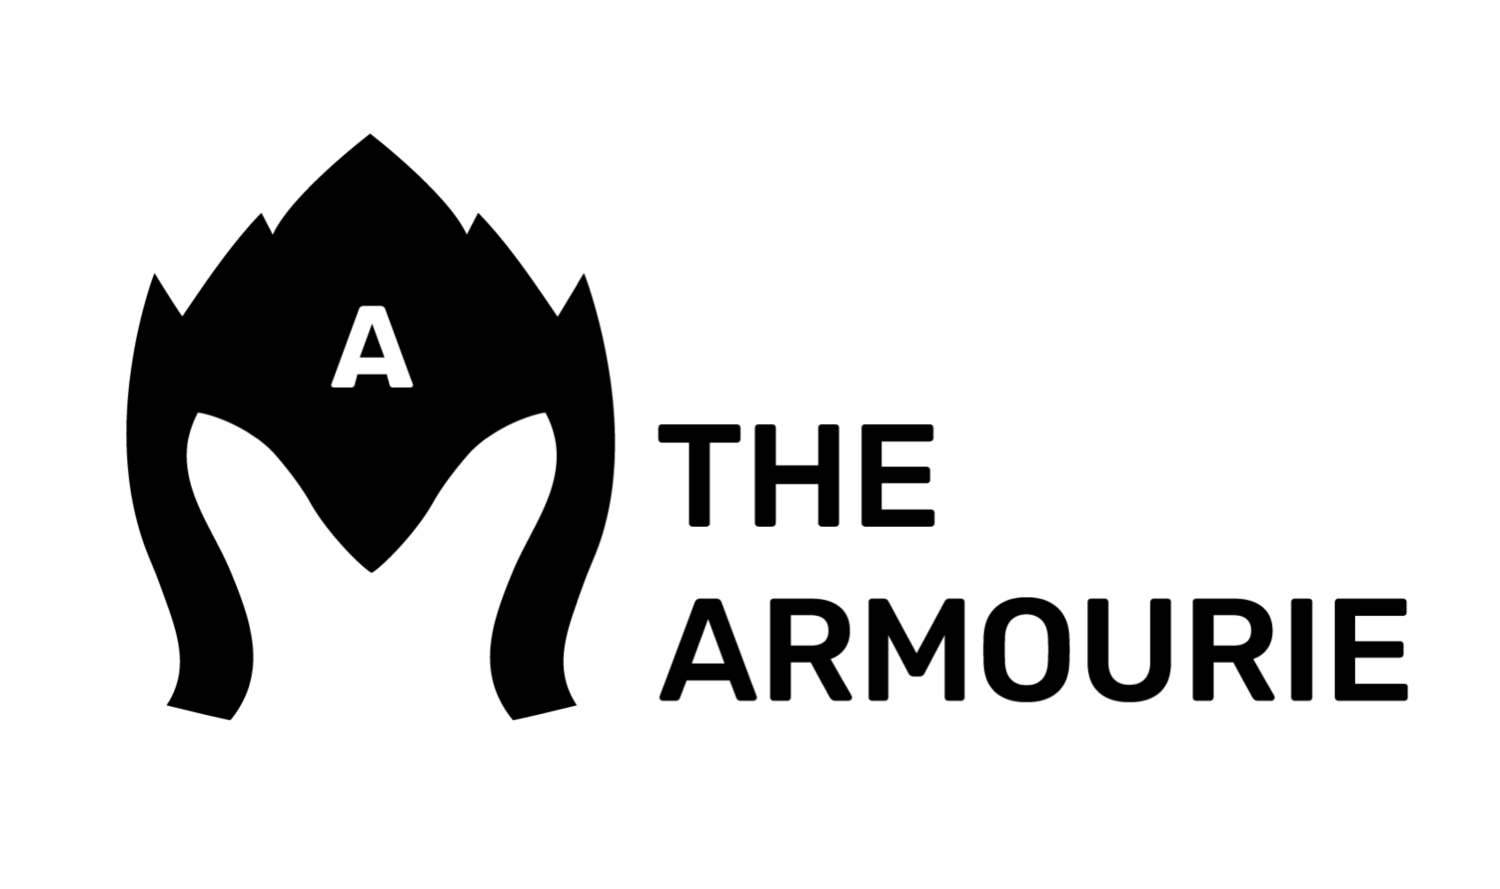 The Armourie